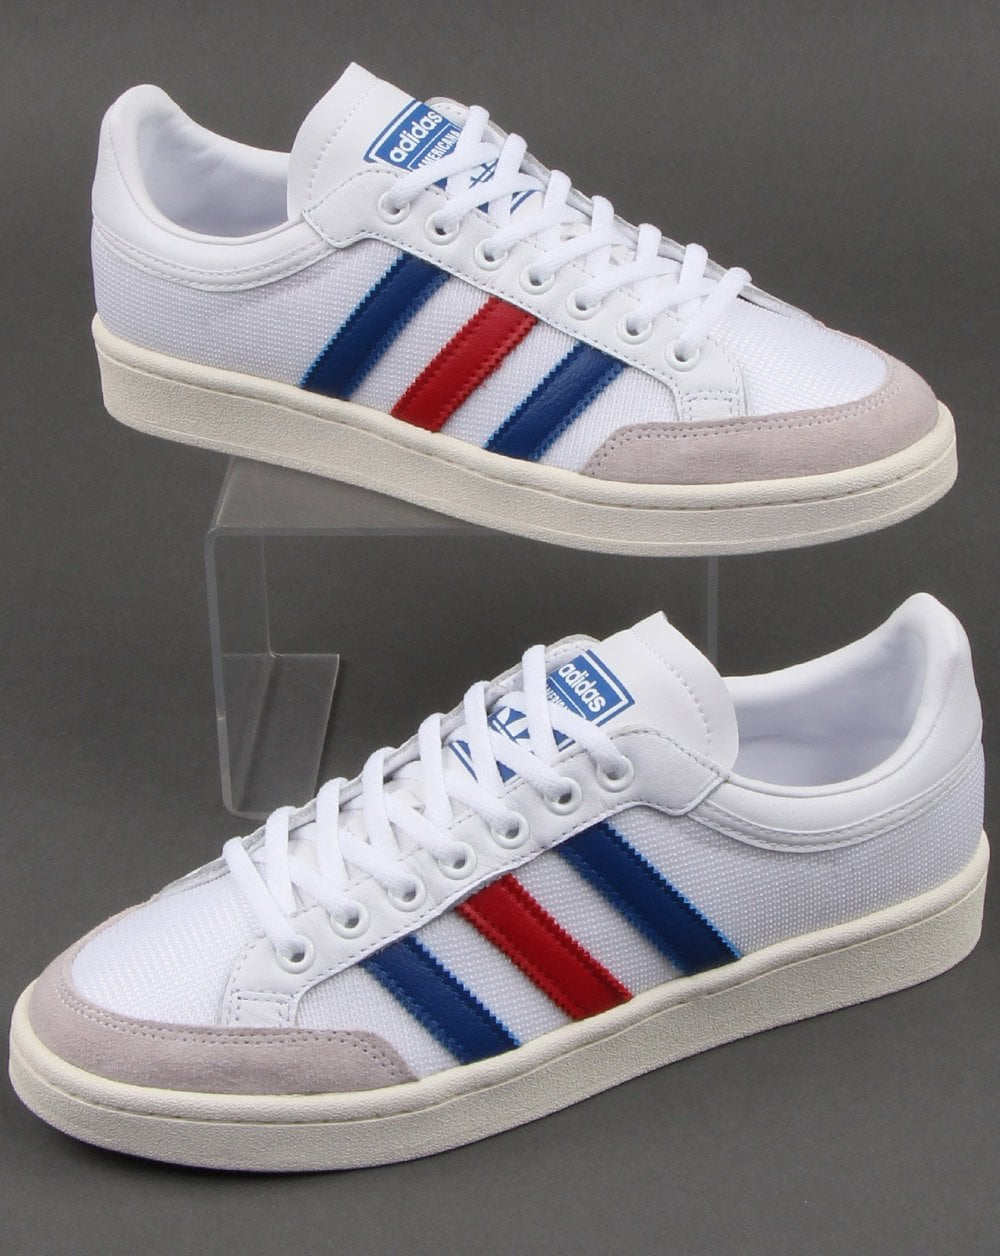 Trainers Adidas Whiteroyalred Low Low Americana Americana Whiteroyalred Adidas Trainers Y6b7yfg